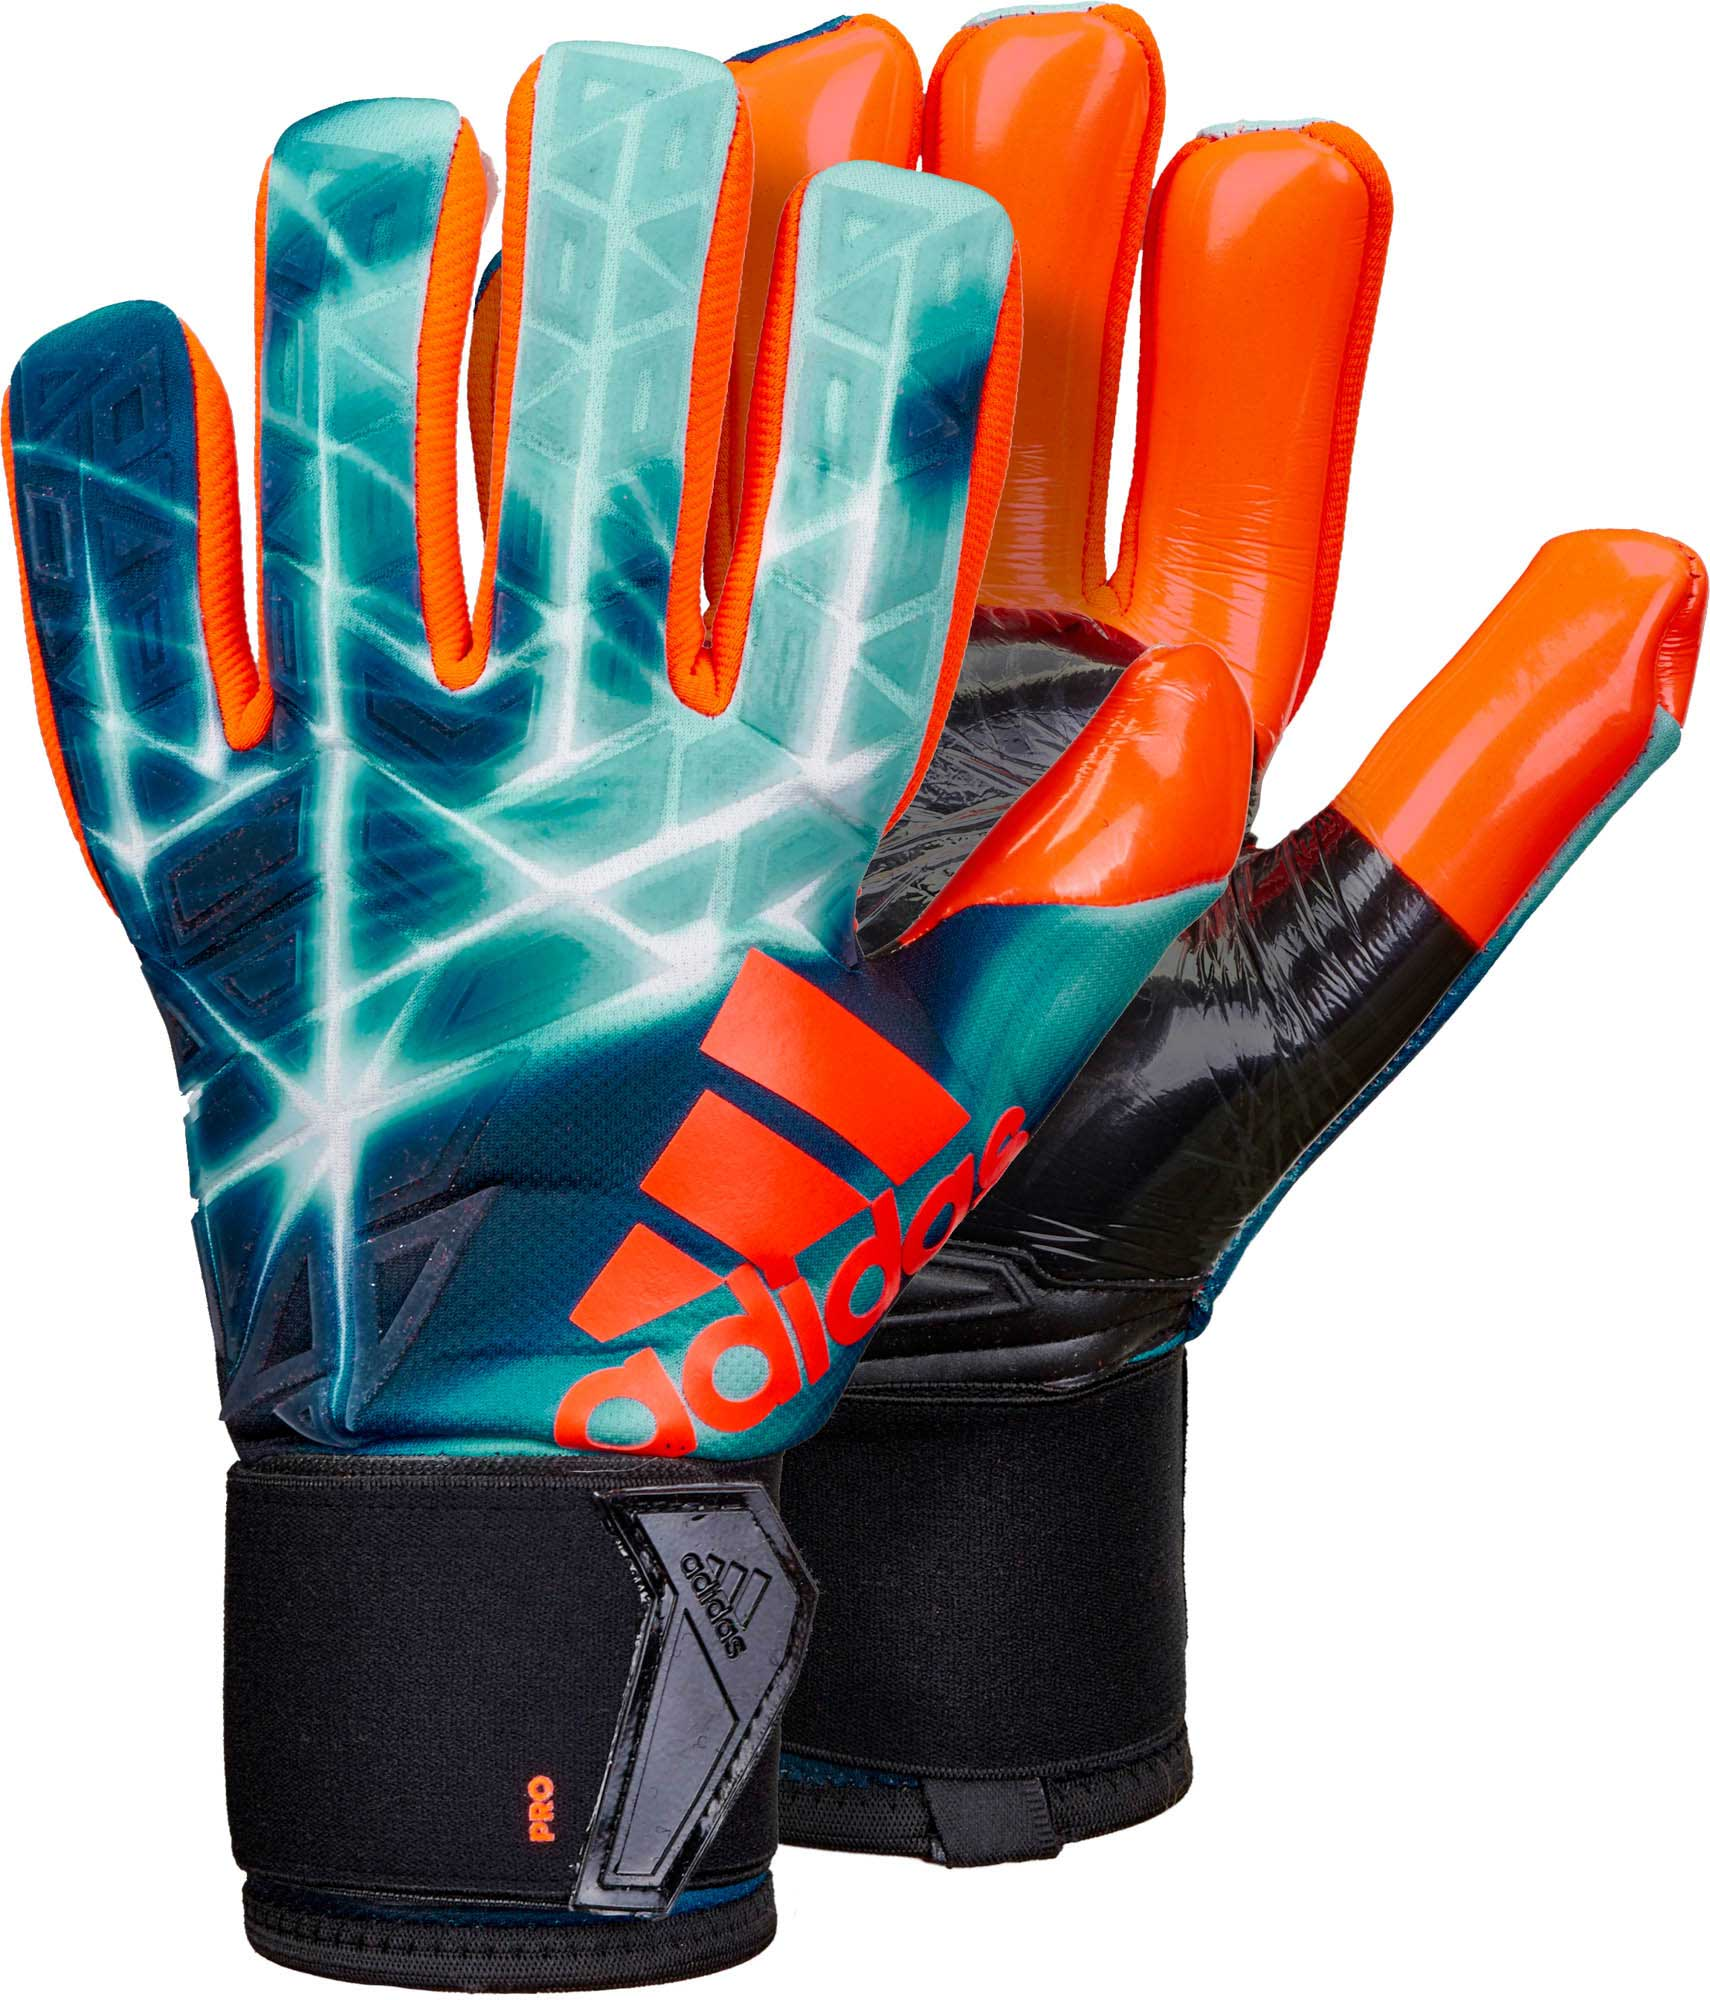 new product 51028 3af51 adidas ACE Trans Pro Goalkeeper Gloves – Manuel Neuer – Energy Blue/Black